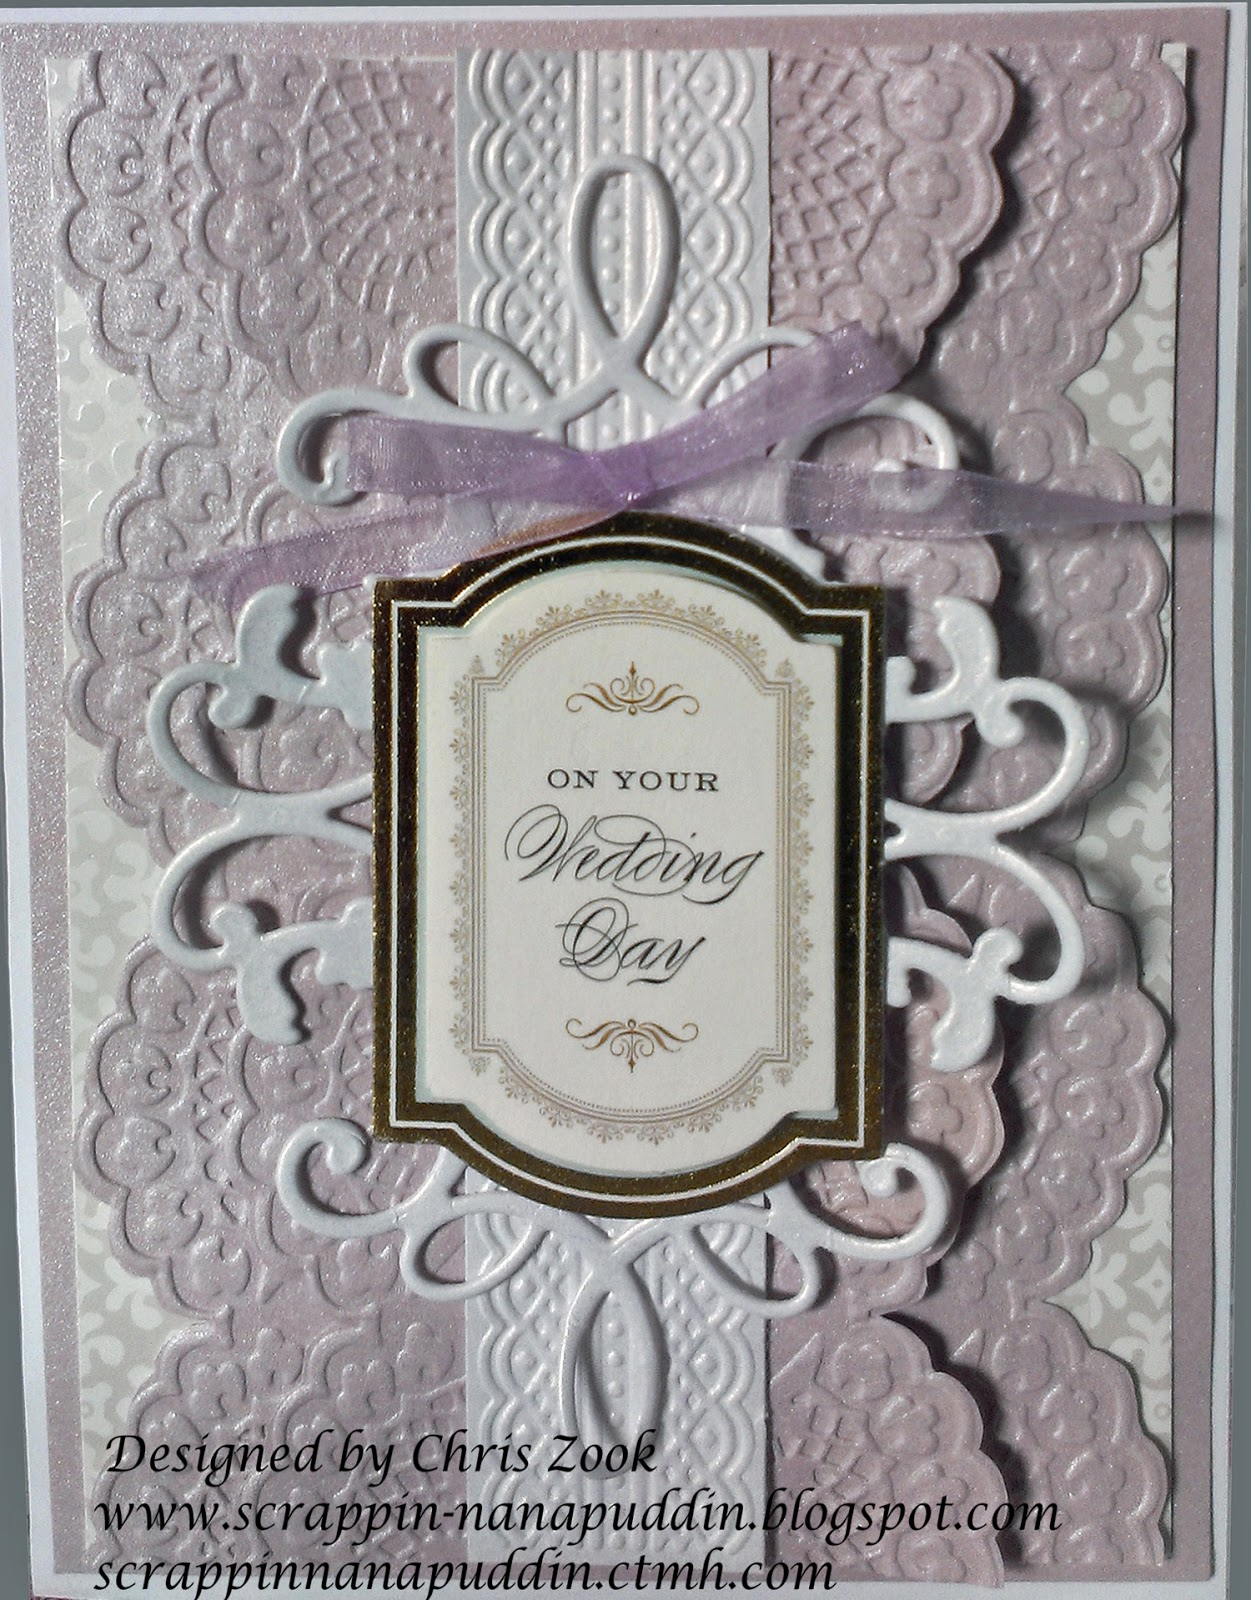 Scrappin\' Nanapuddin: Another Anna Griffin card - Wedding this time!